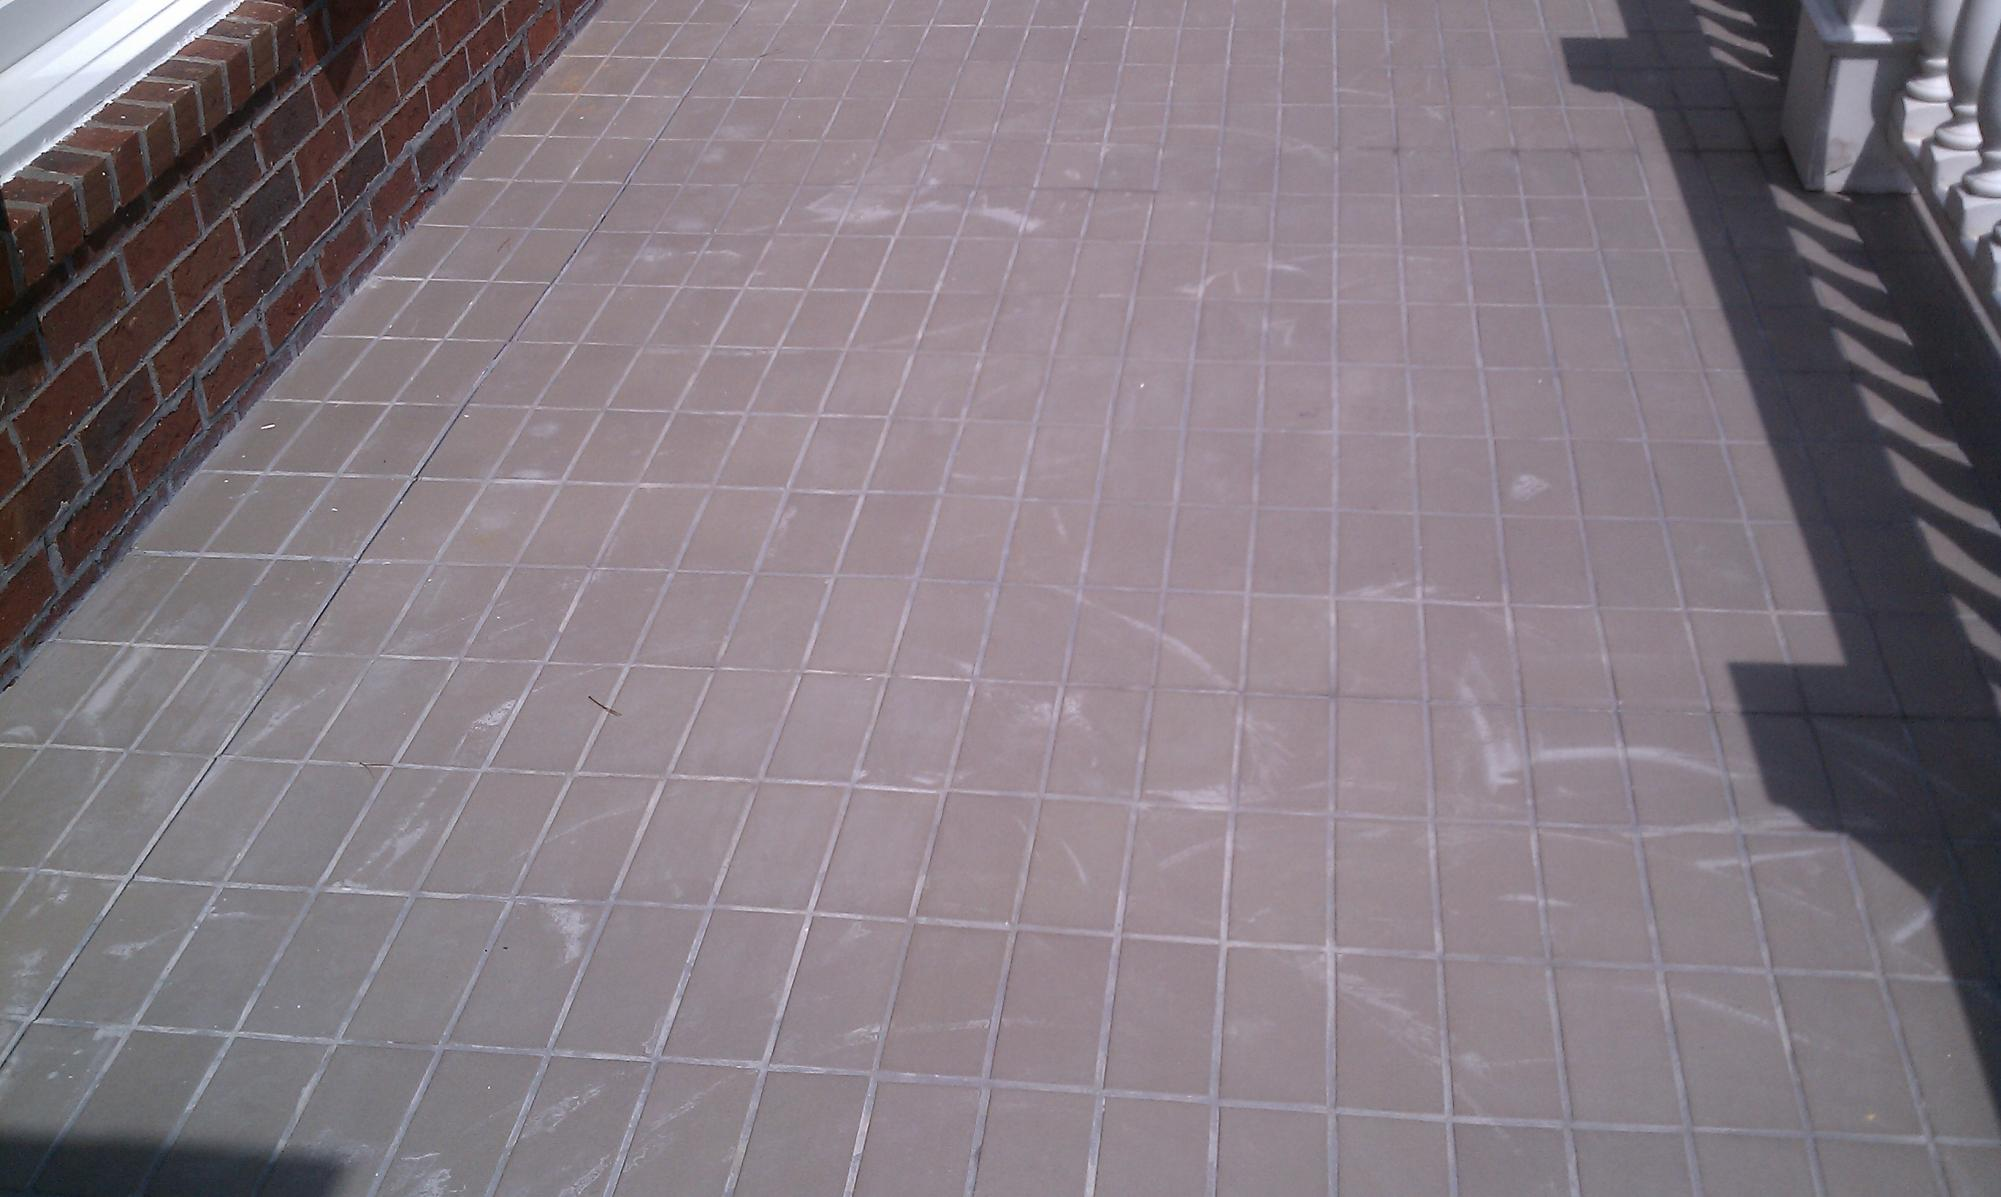 Grout seperation on 2nd floor deck-imag0309.jpg